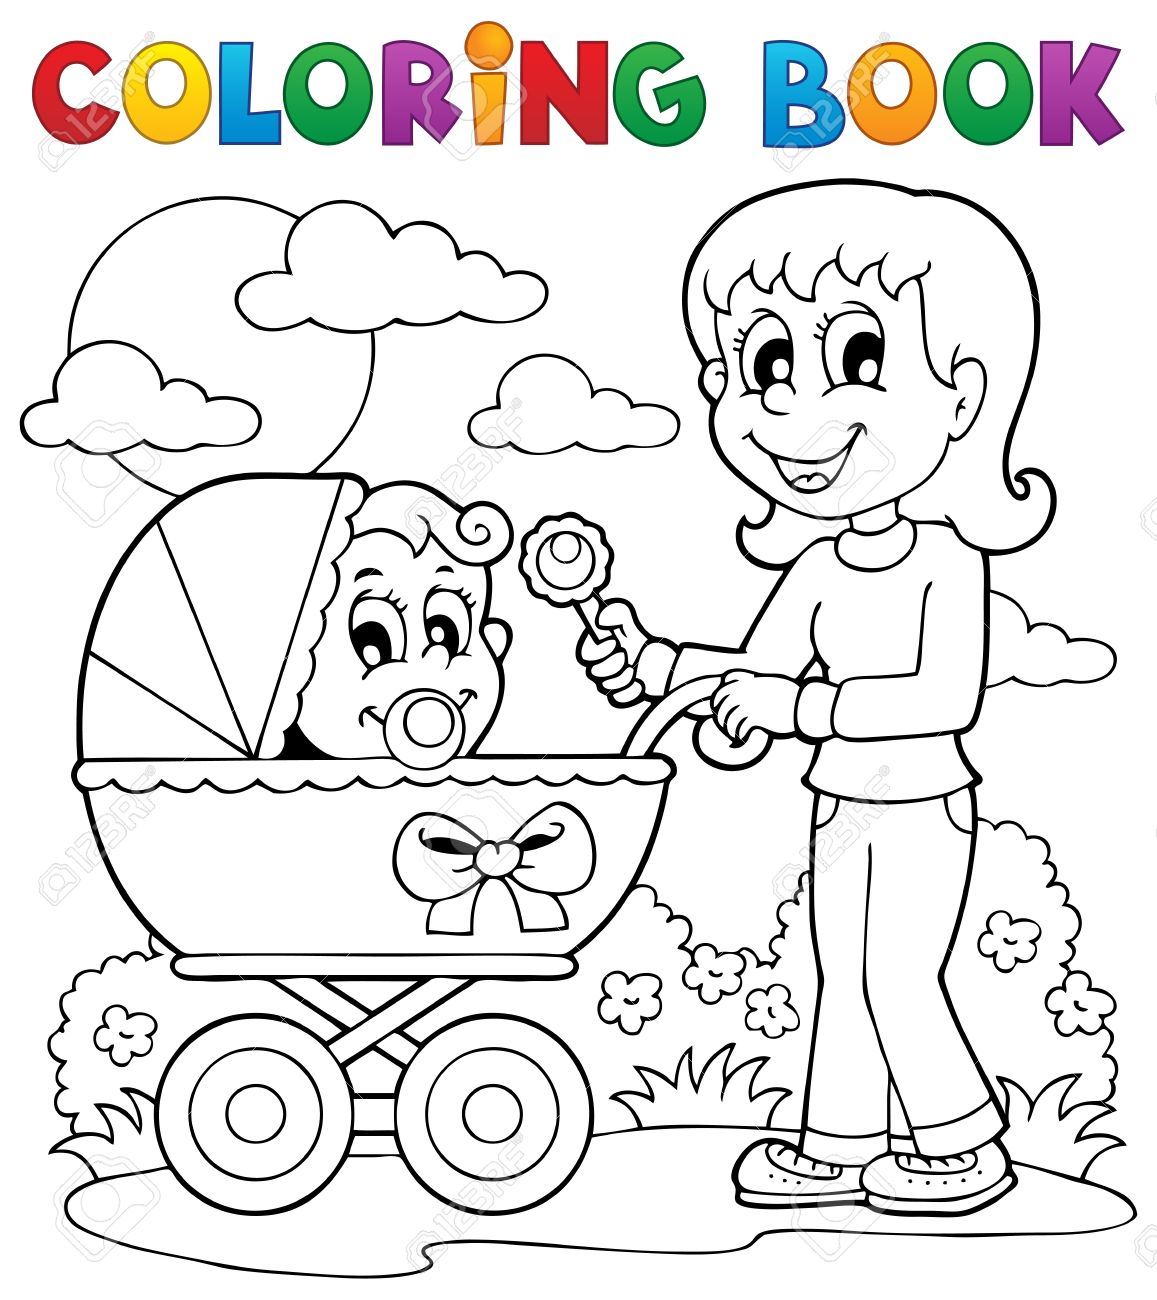 Coloring Book Baby Theme Image 2 Stock Vector